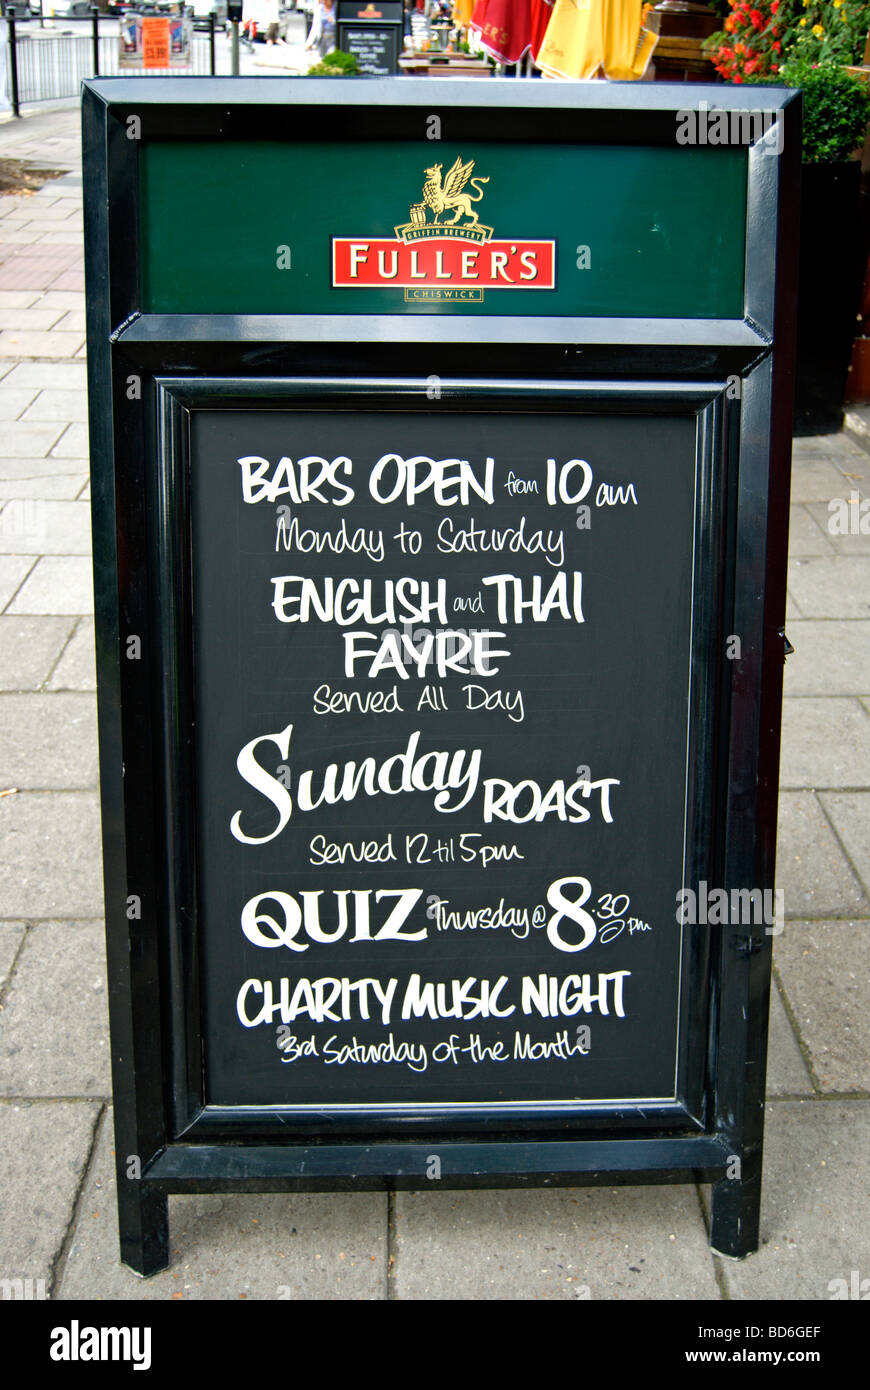 board outside a fuller's pub in chiswick, london, england, advertising food, a music night and pub quiz - Stock Image